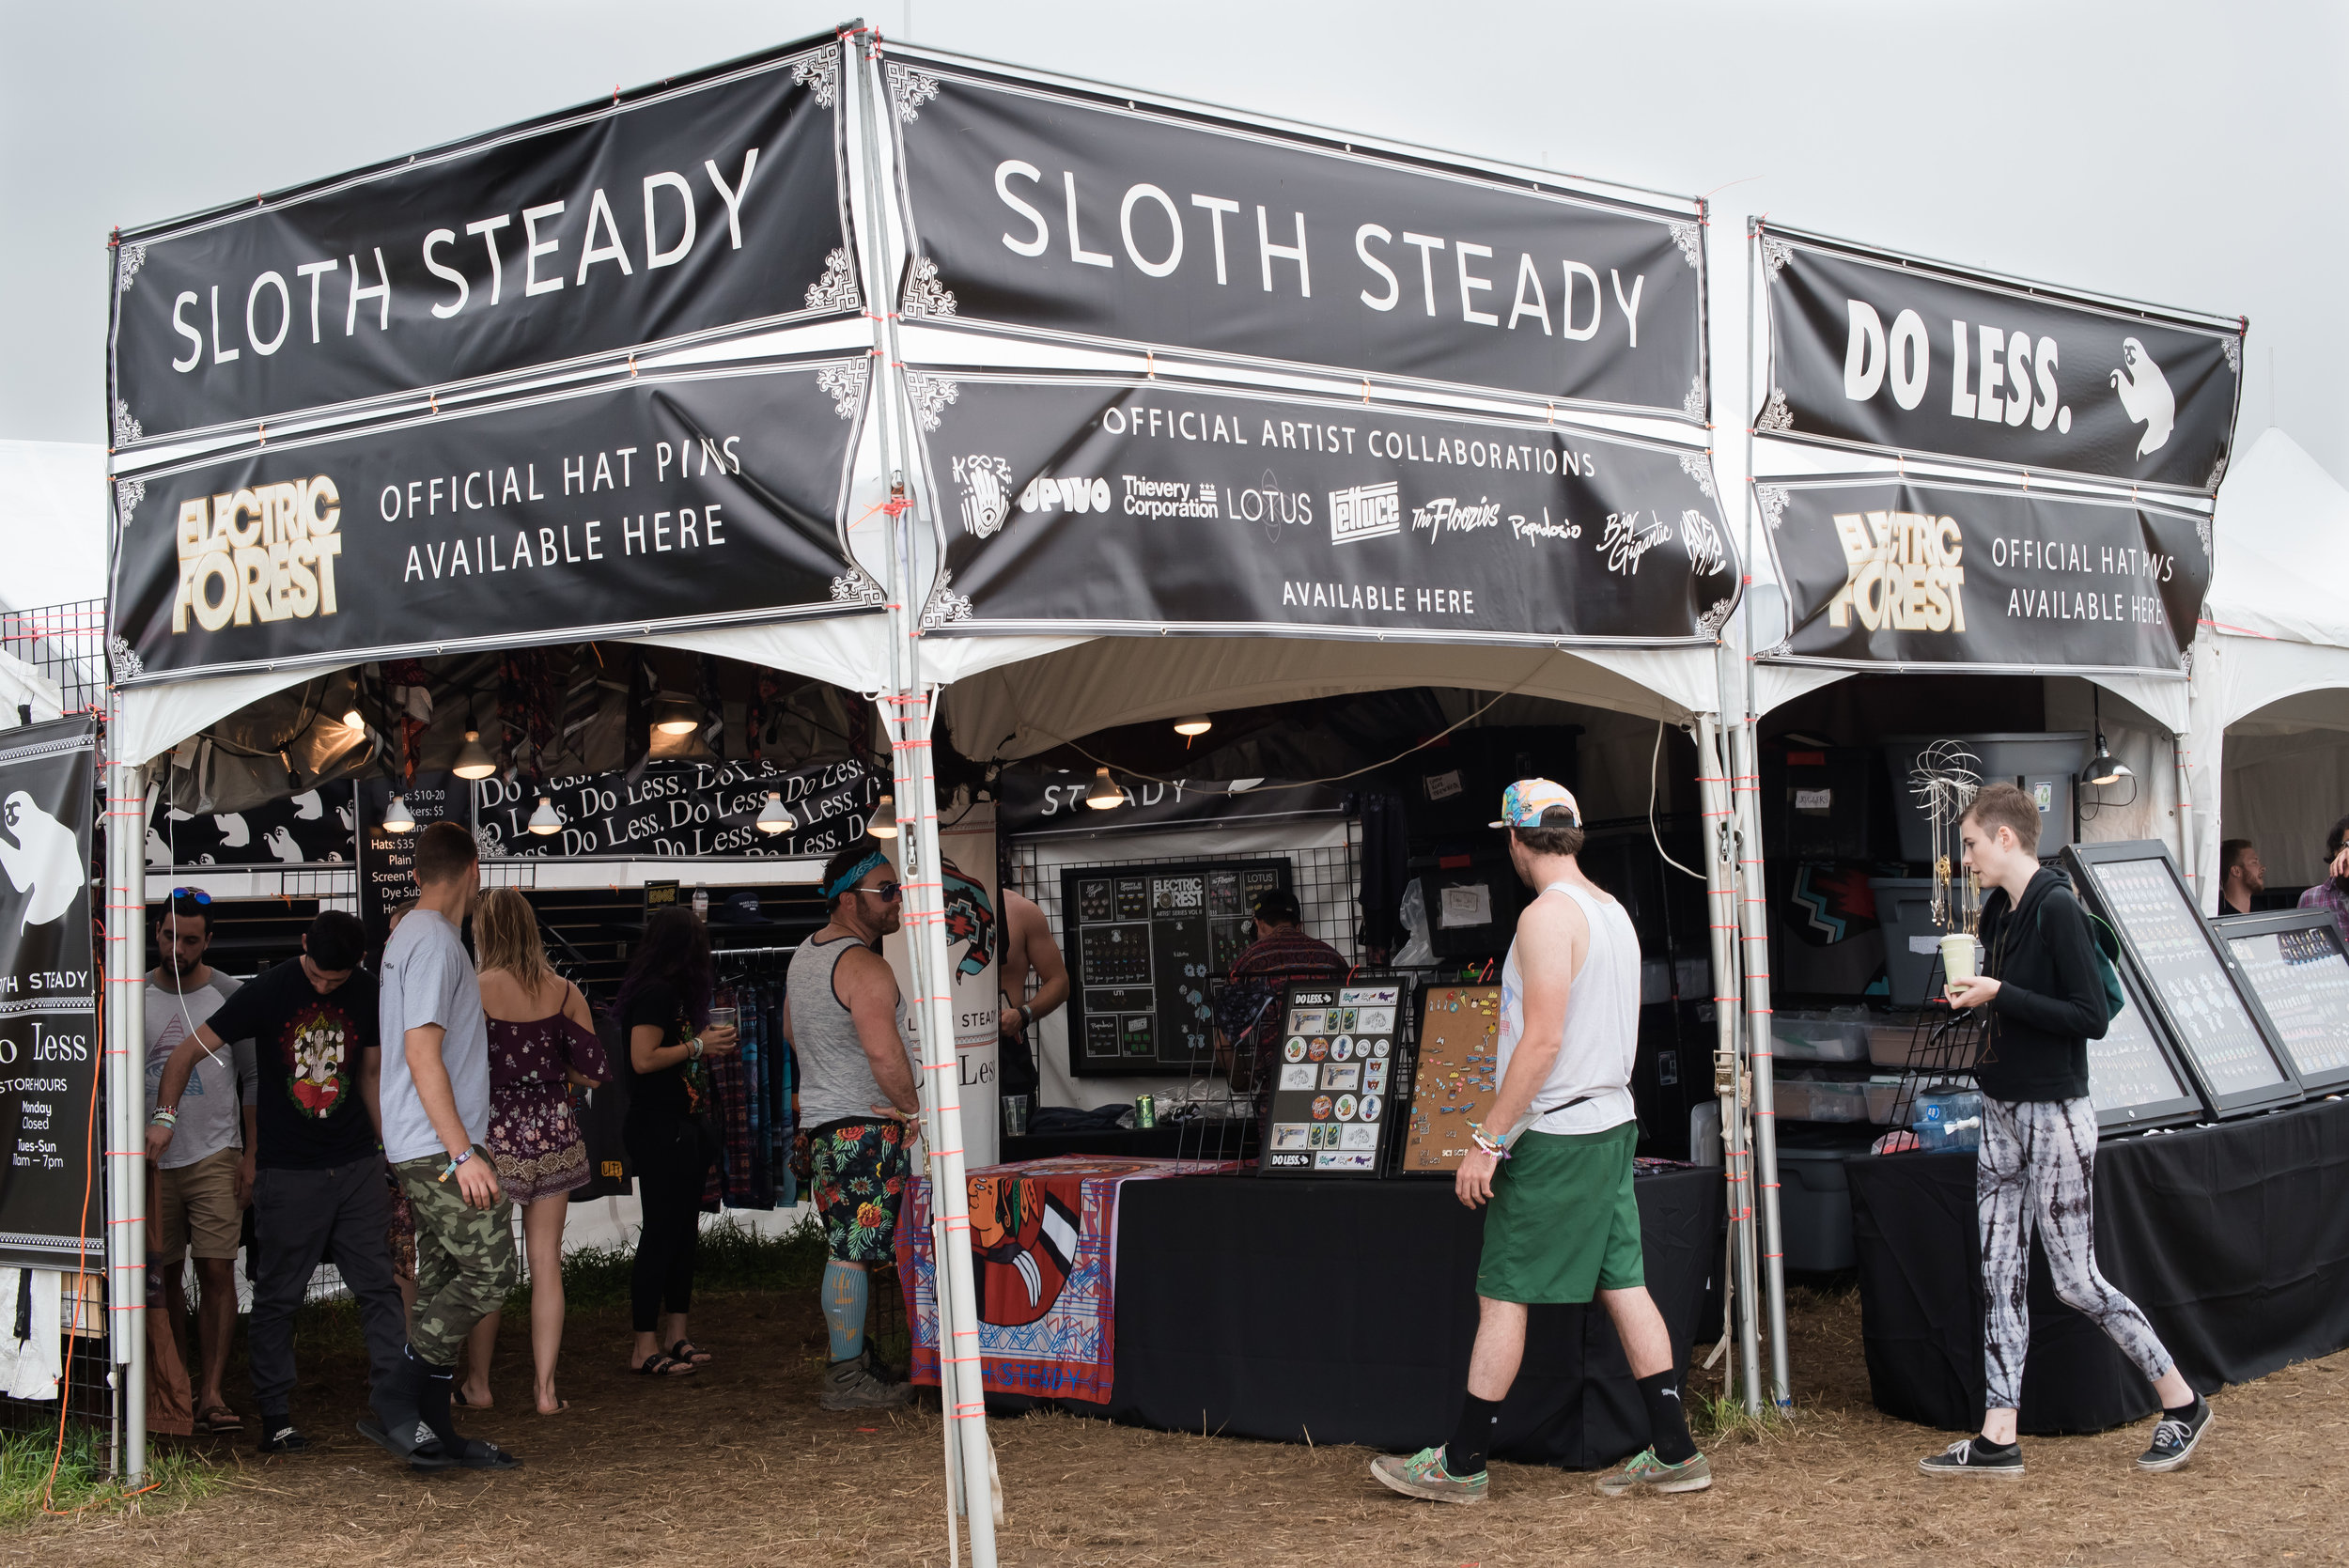 EF17_sponsors_Sloth Steady-6.jpg